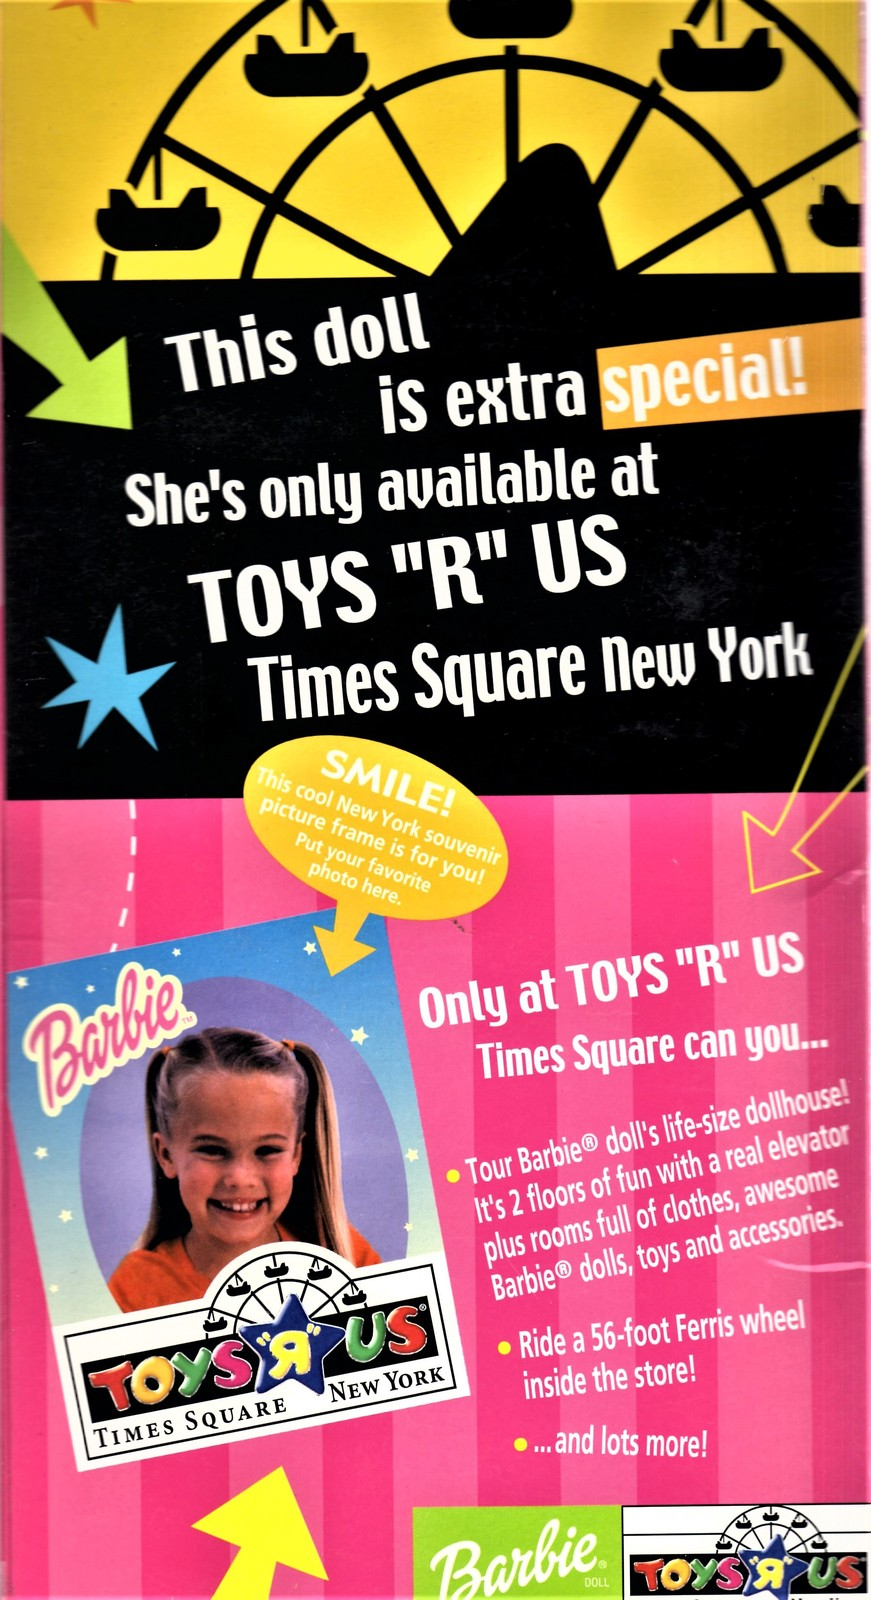 Barbie Doll - Toys R Us, Times Square New York image 4